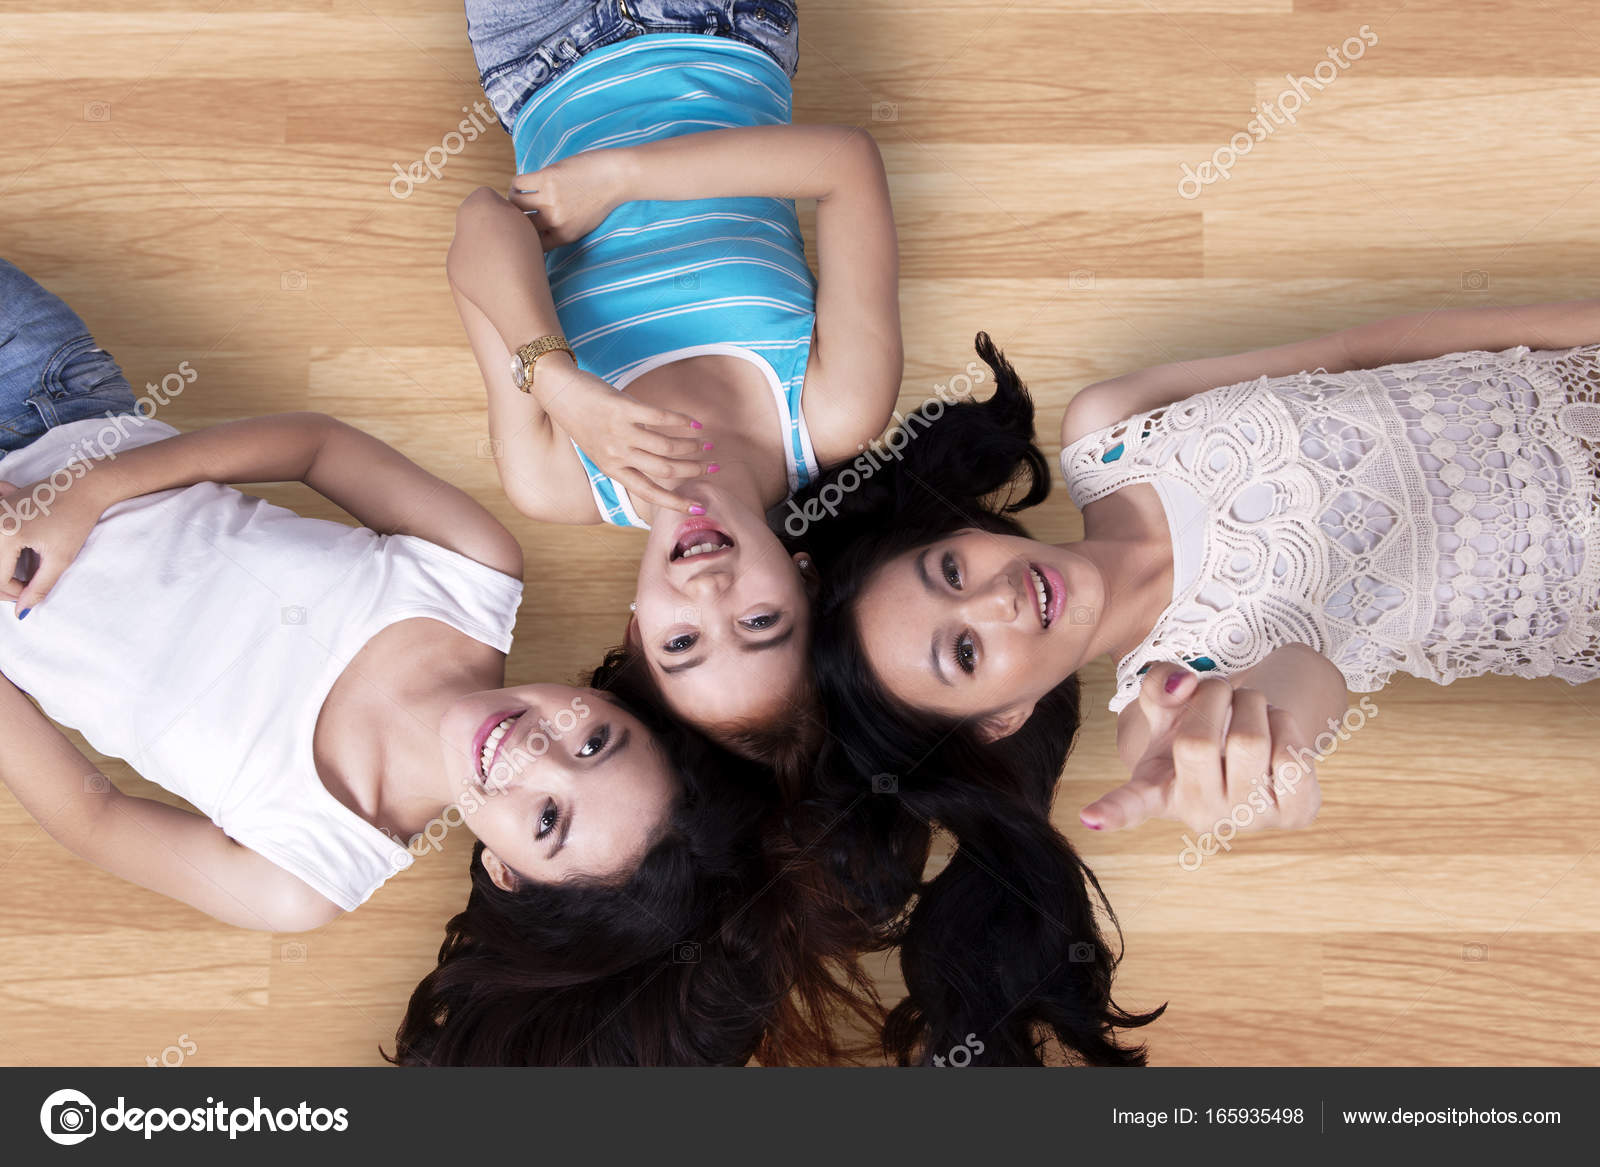 Pretty Girls Lying Down On The Wooden Floor Stock Photo